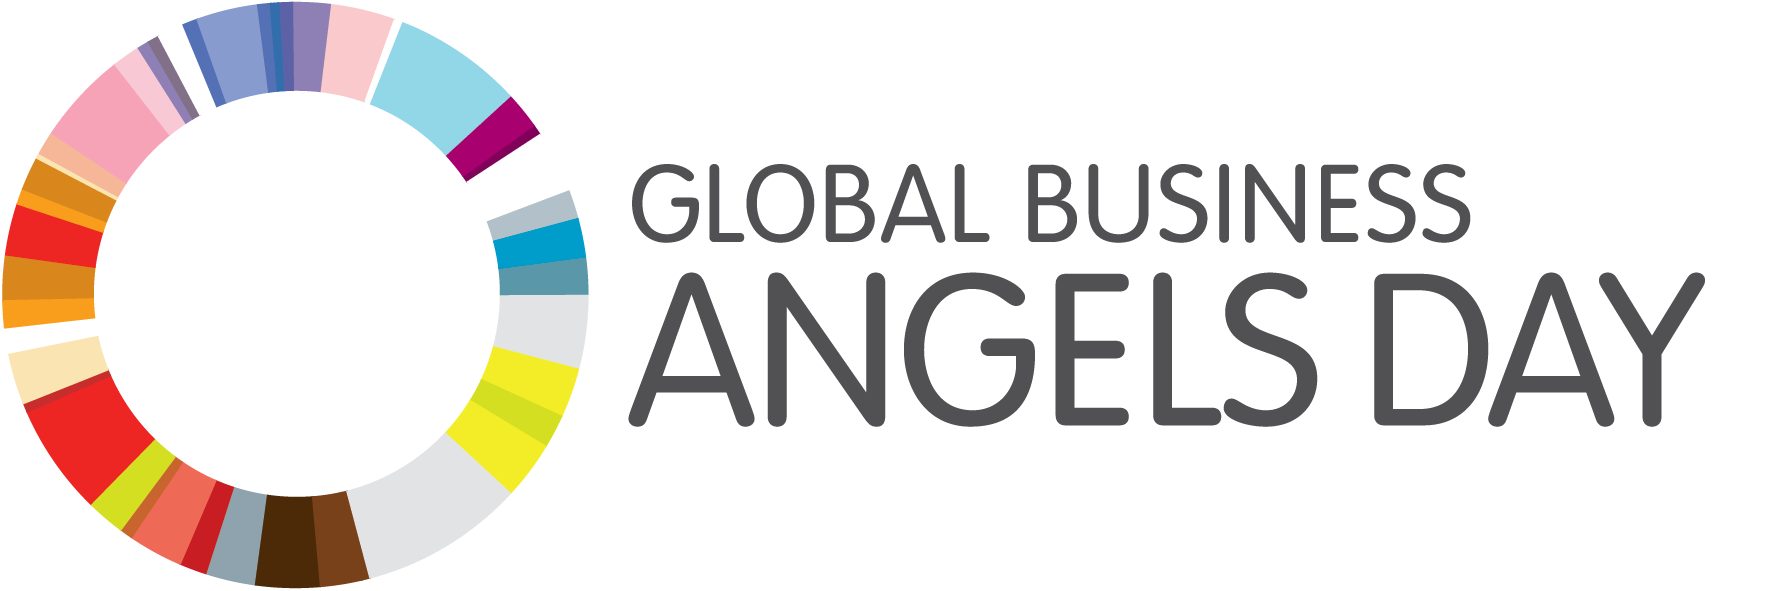 GLOBAL BUSINESS ANGELS DAY